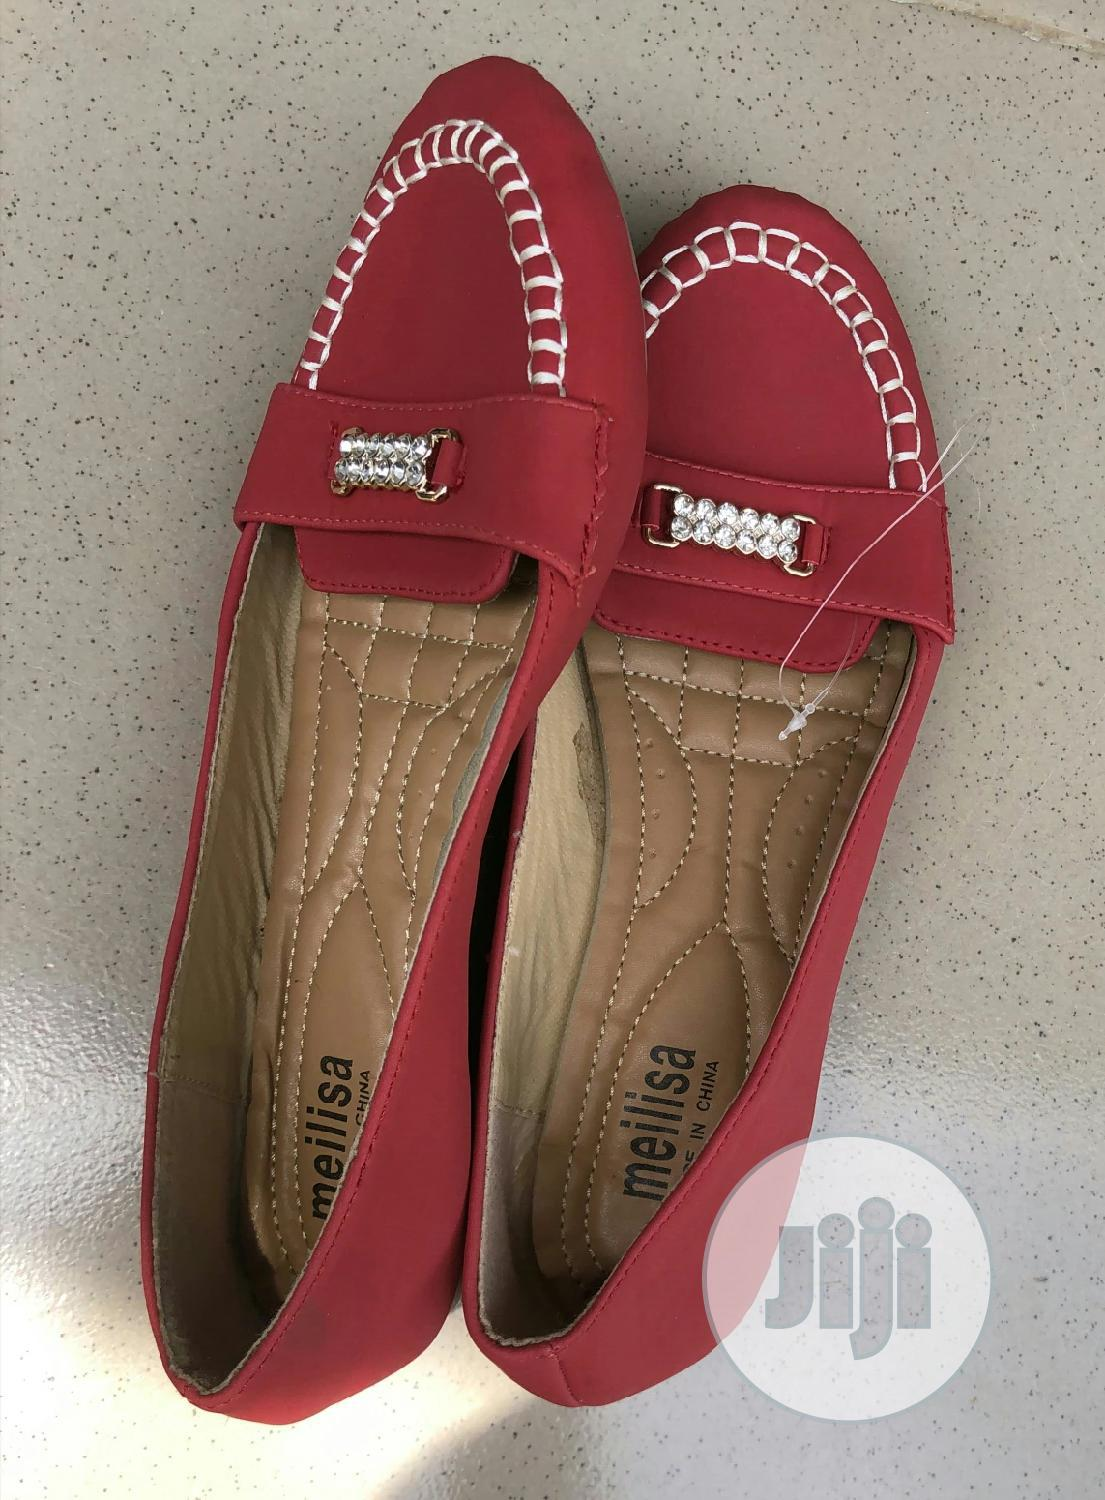 Female Shoes | Shoes for sale in Apo District, Abuja (FCT) State, Nigeria